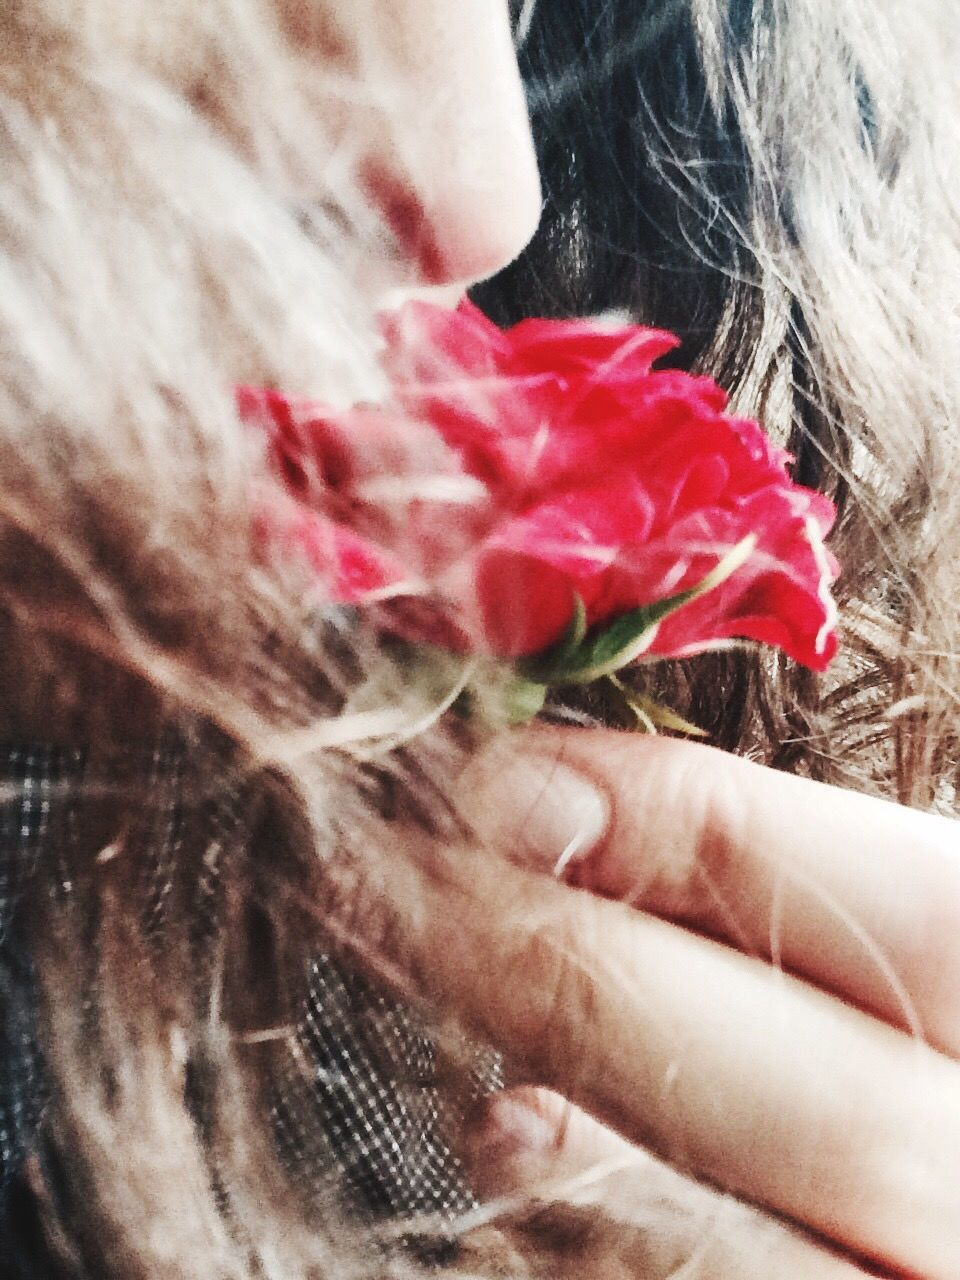 one person, real people, human hand, human body part, holding, human hair, lifestyles, women, close-up, day, outdoors, childhood, flower, people, adult